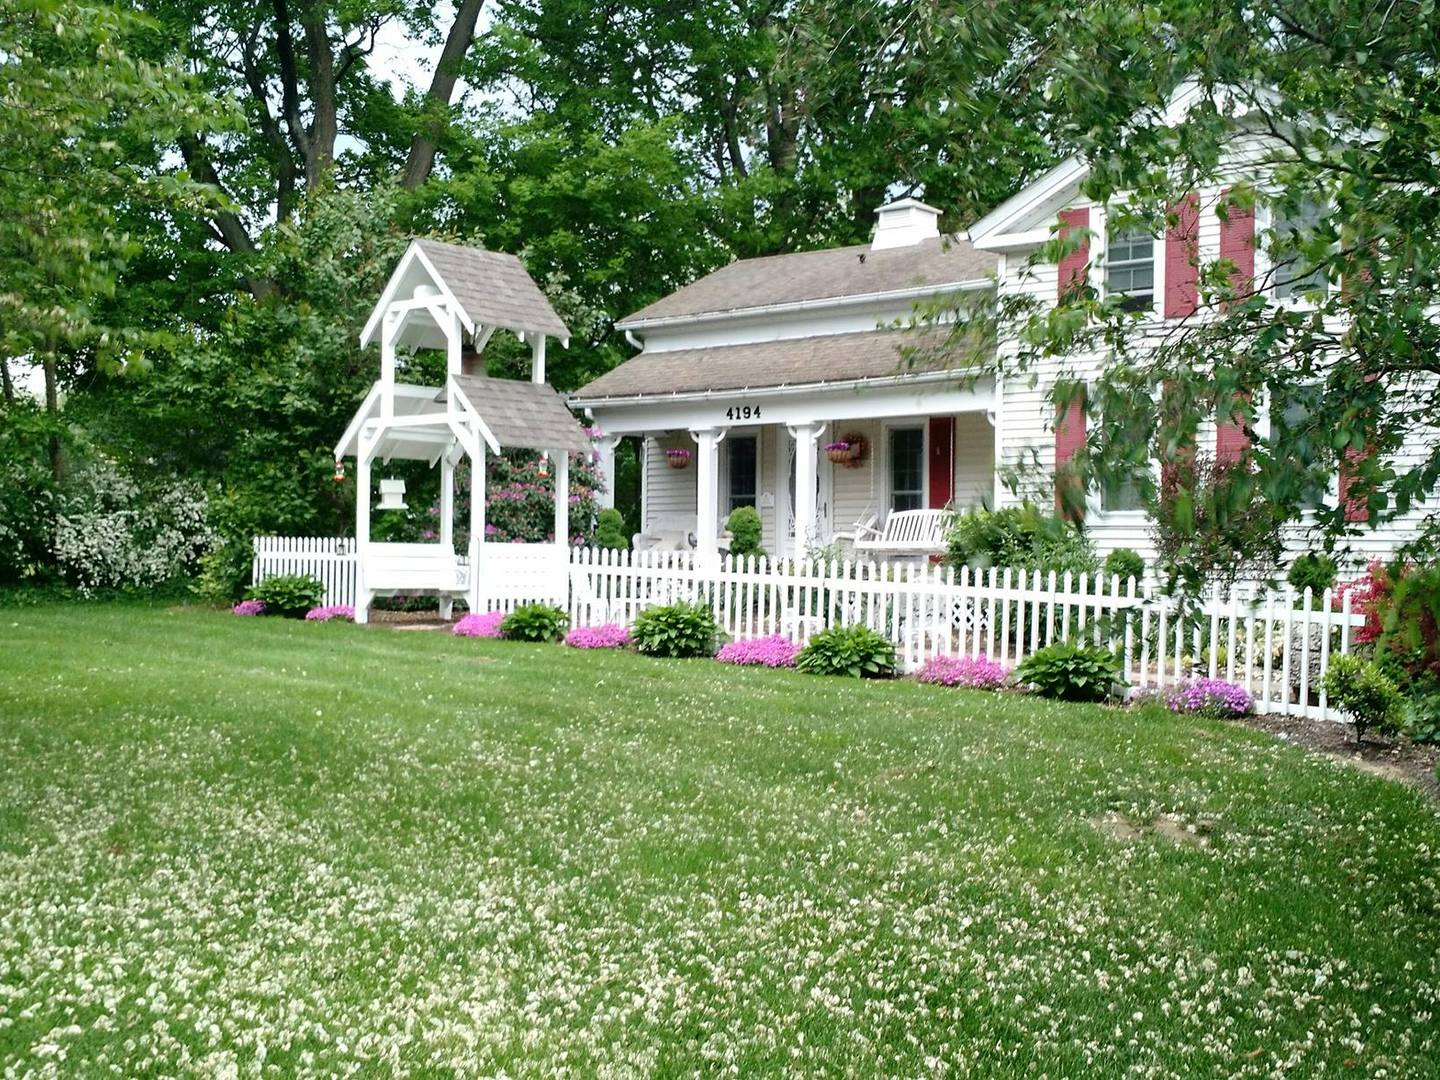 A large lawn in front of a house at The Lost Pearl Bed and Breakfast.